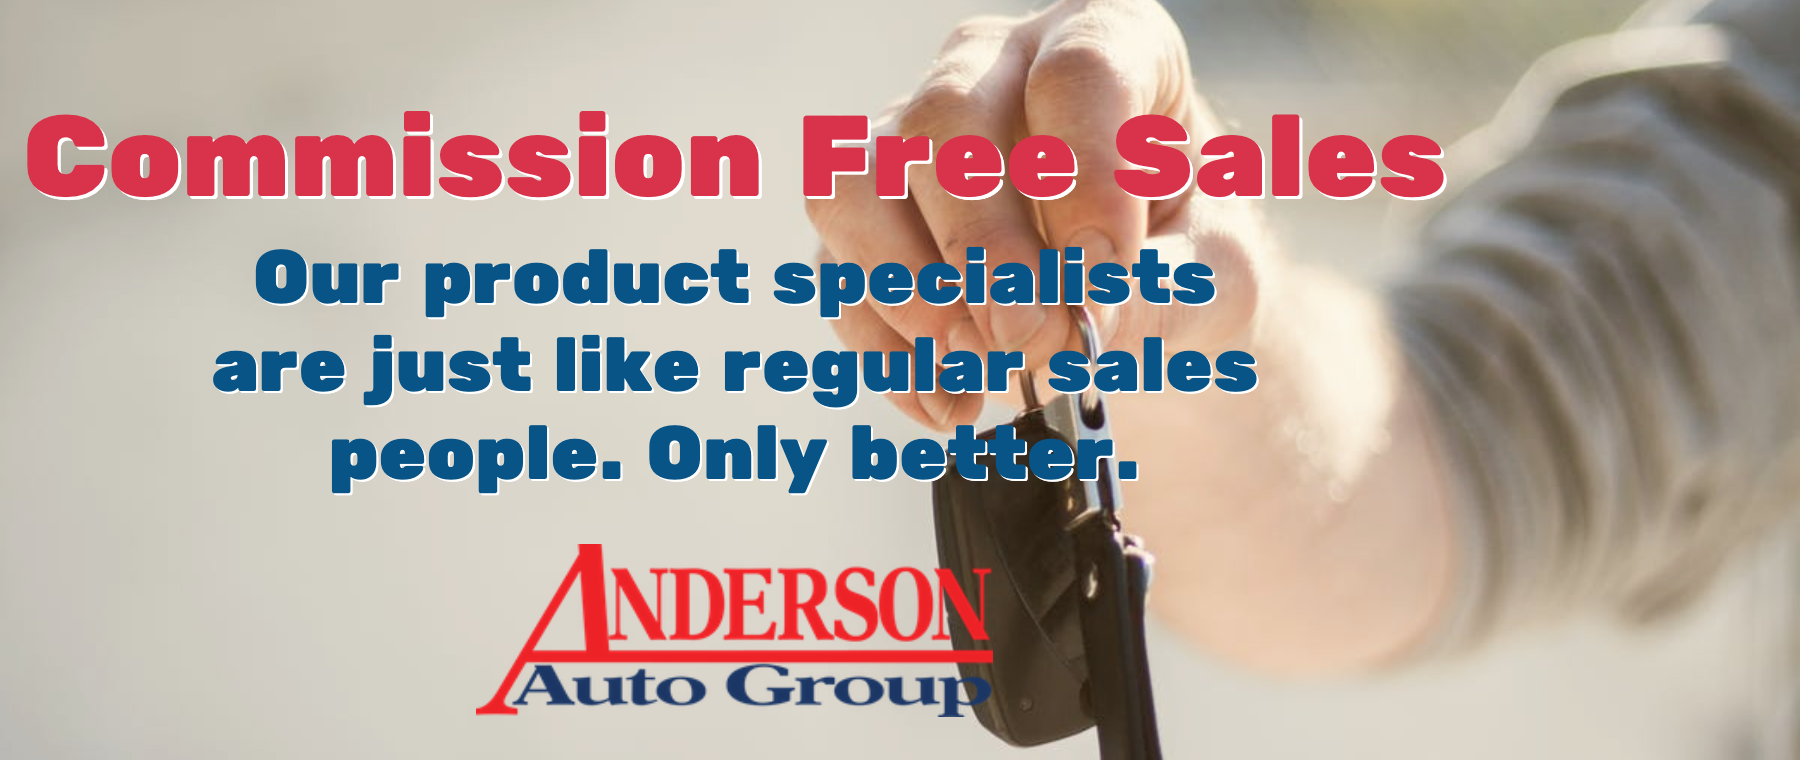 Anderson Chevrolet Commission Free Sales